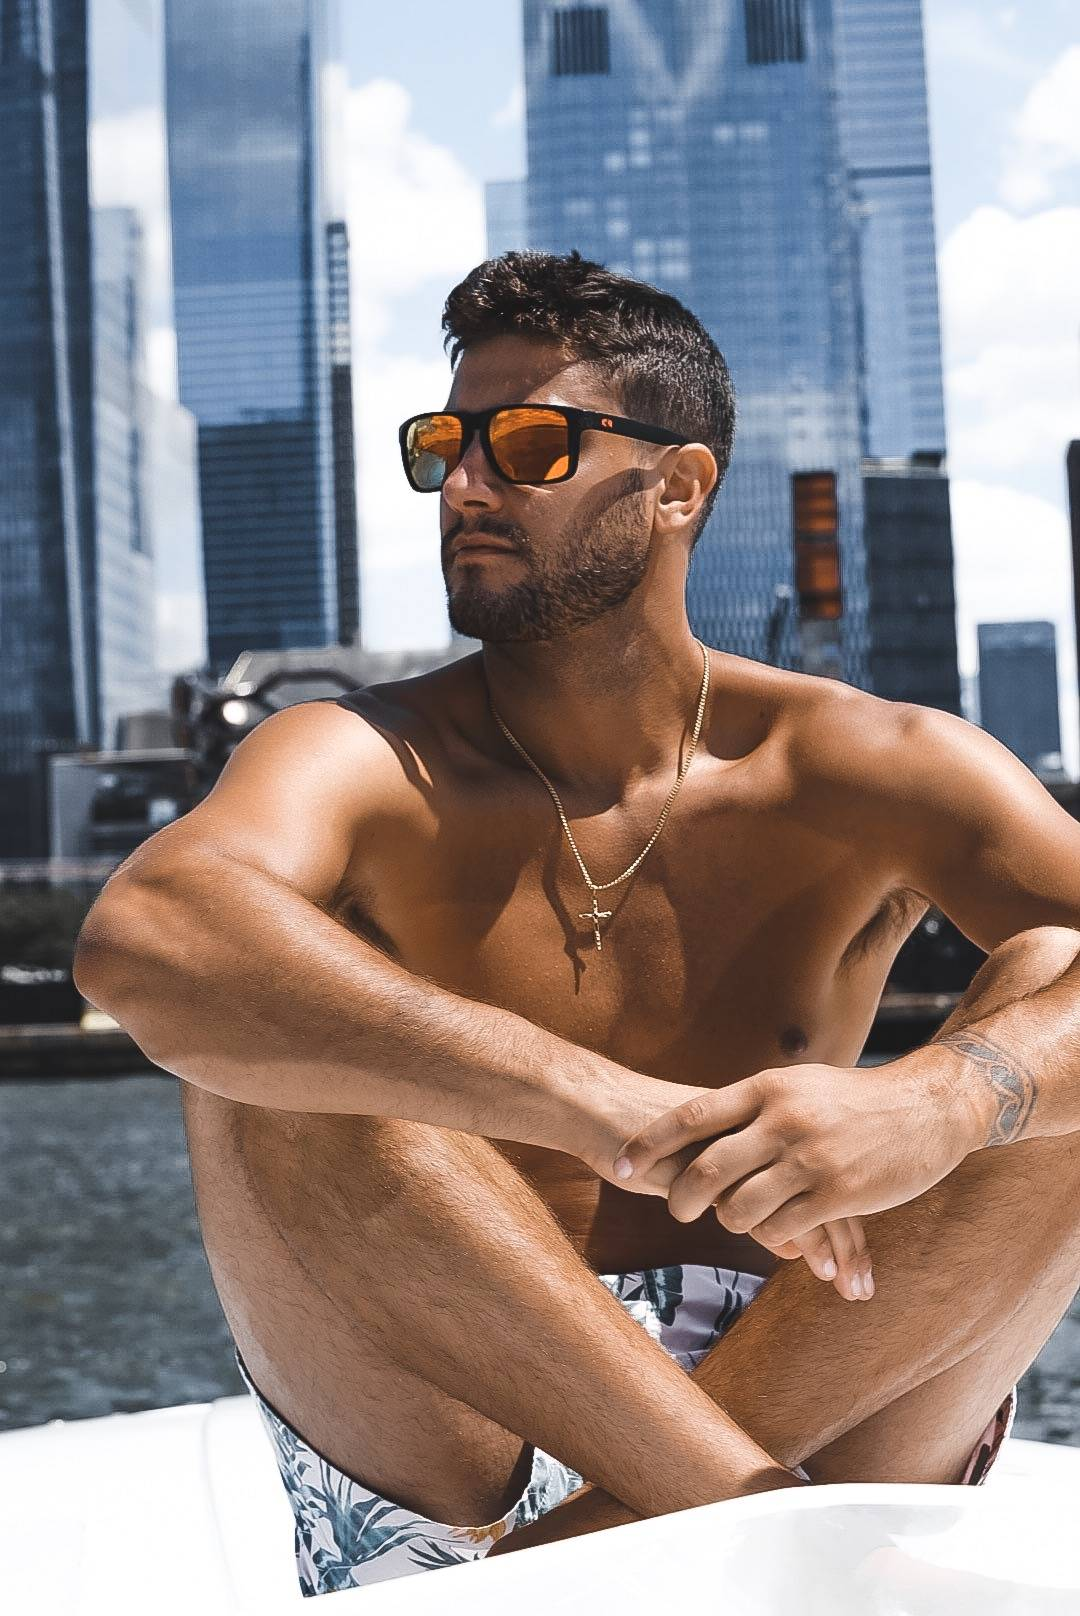 A boater relaxes in New York City with his stylish Rheos shades.